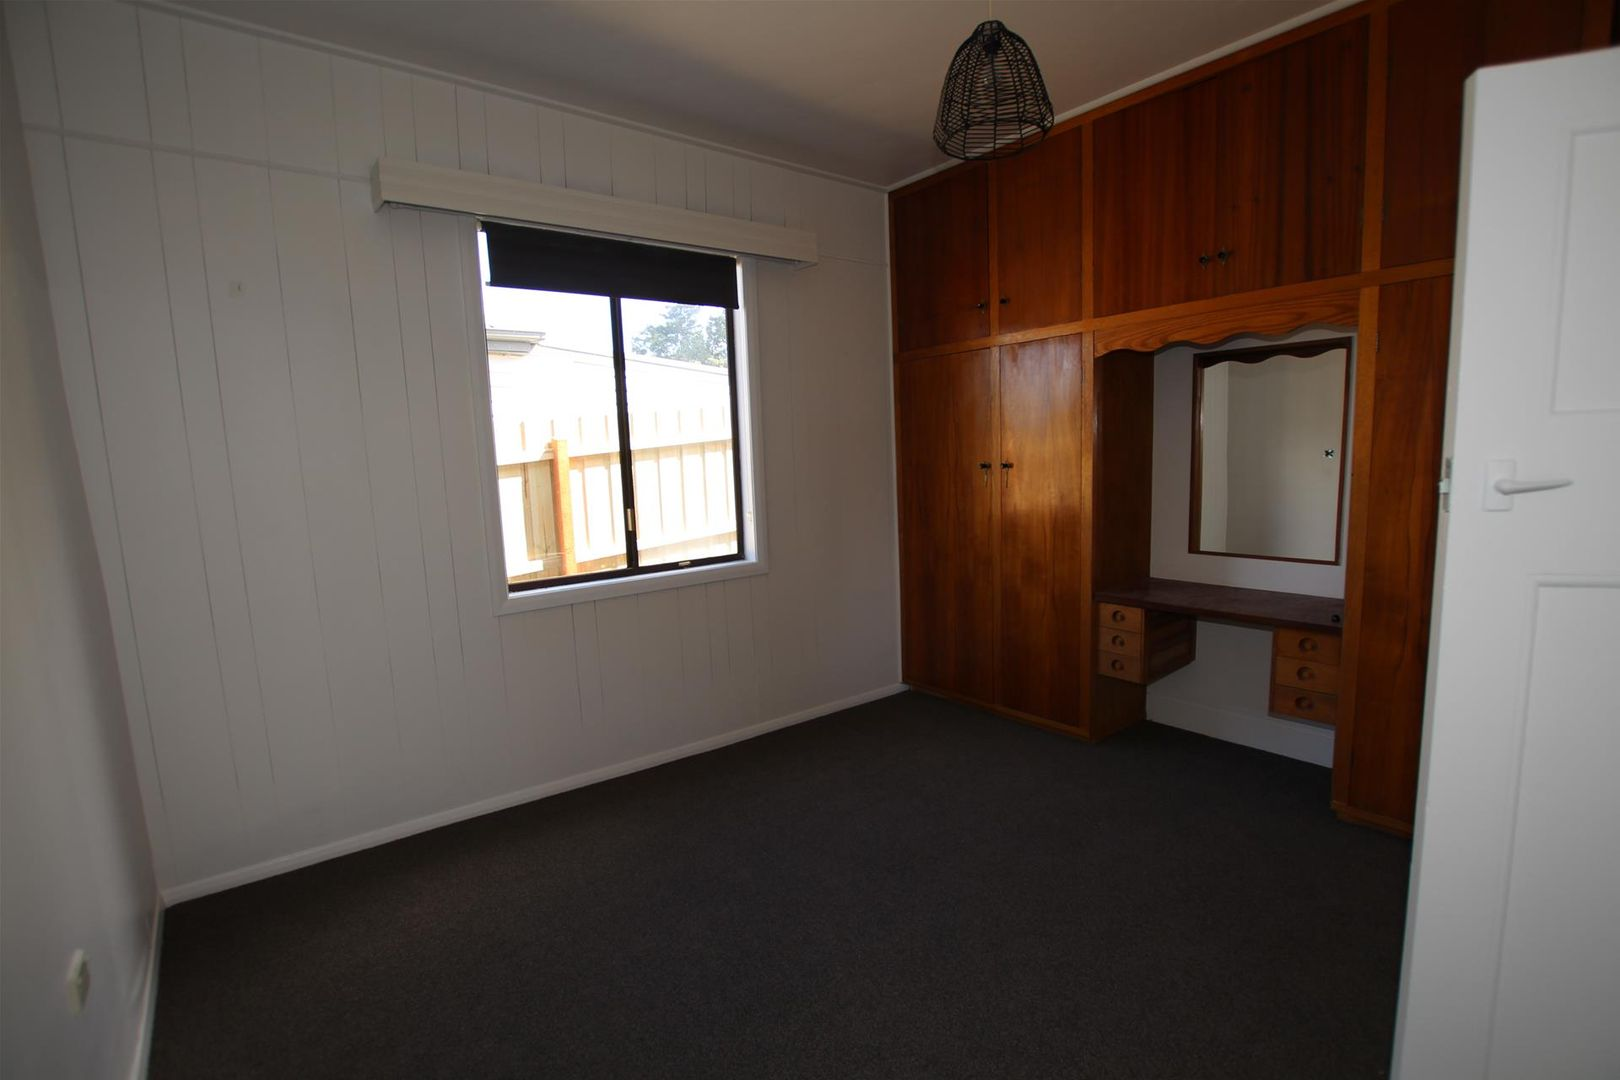 14 Kruger Street, Warrnambool VIC 3280, Image 2